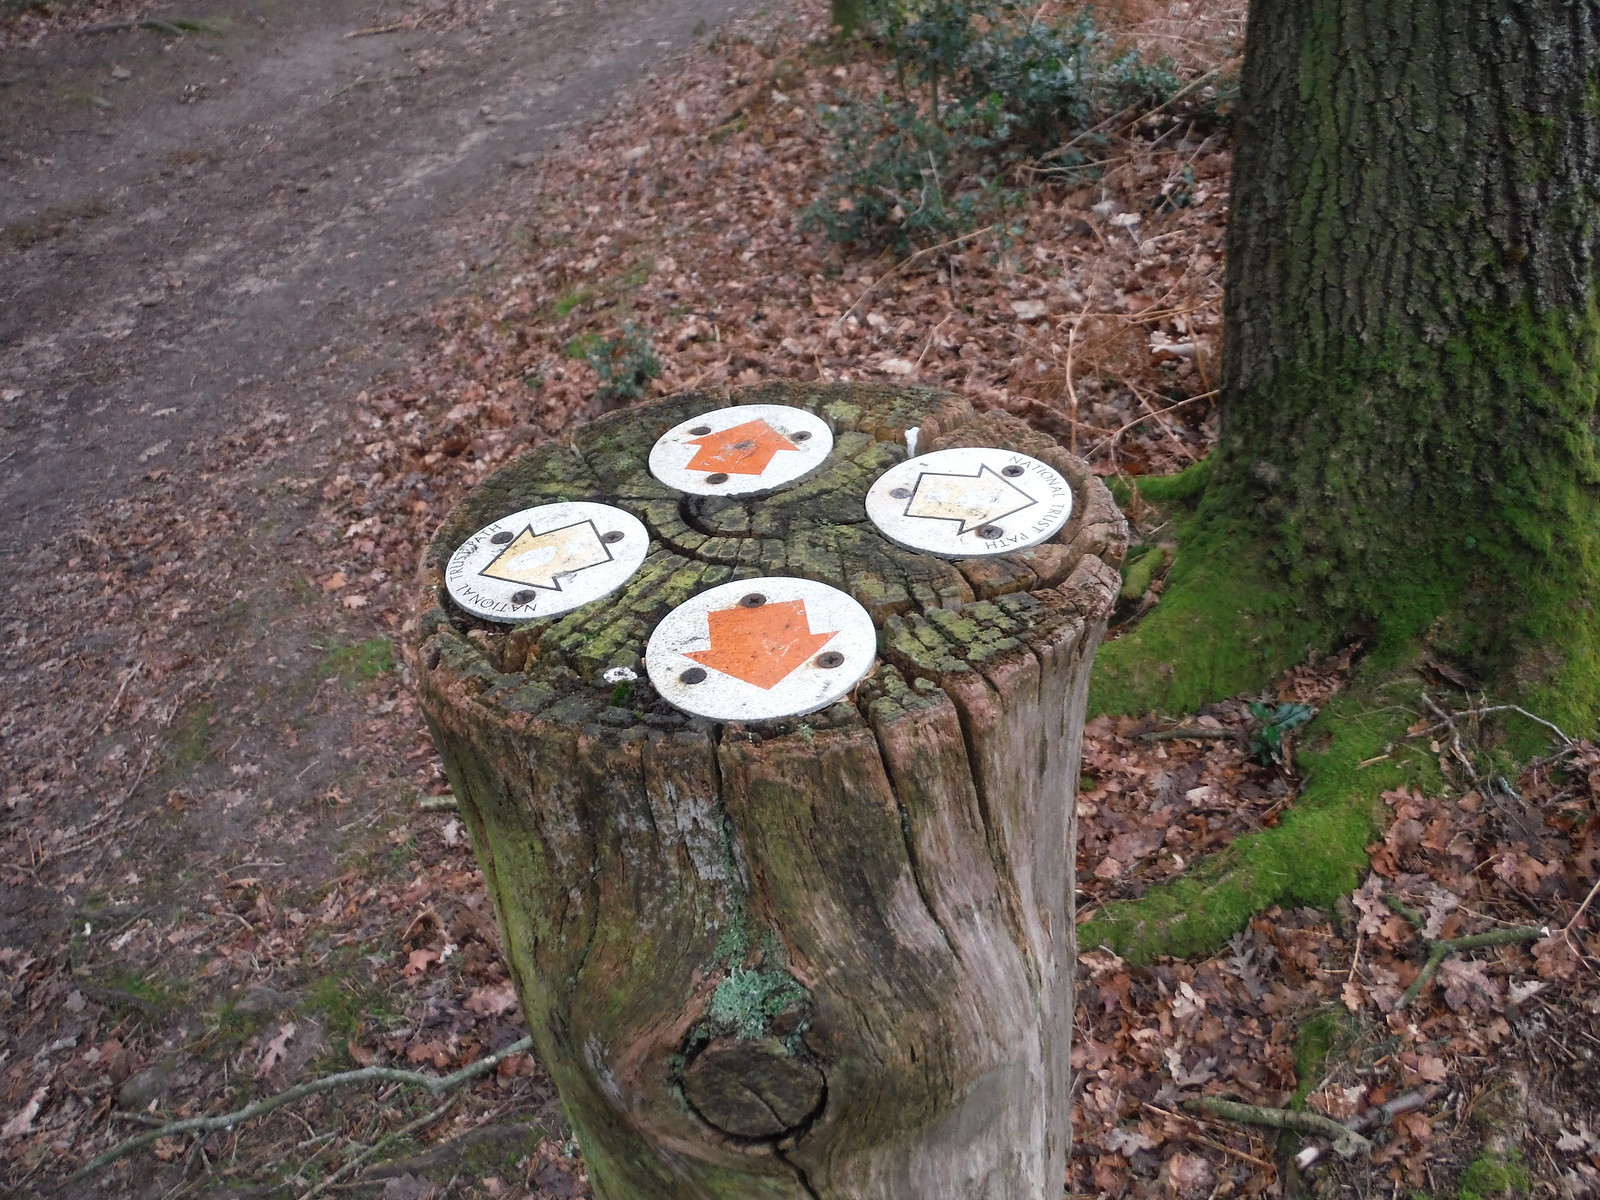 Highcomb Bottom, Markers on Tree Stump SWC Walk 144 Haslemere to Farnham